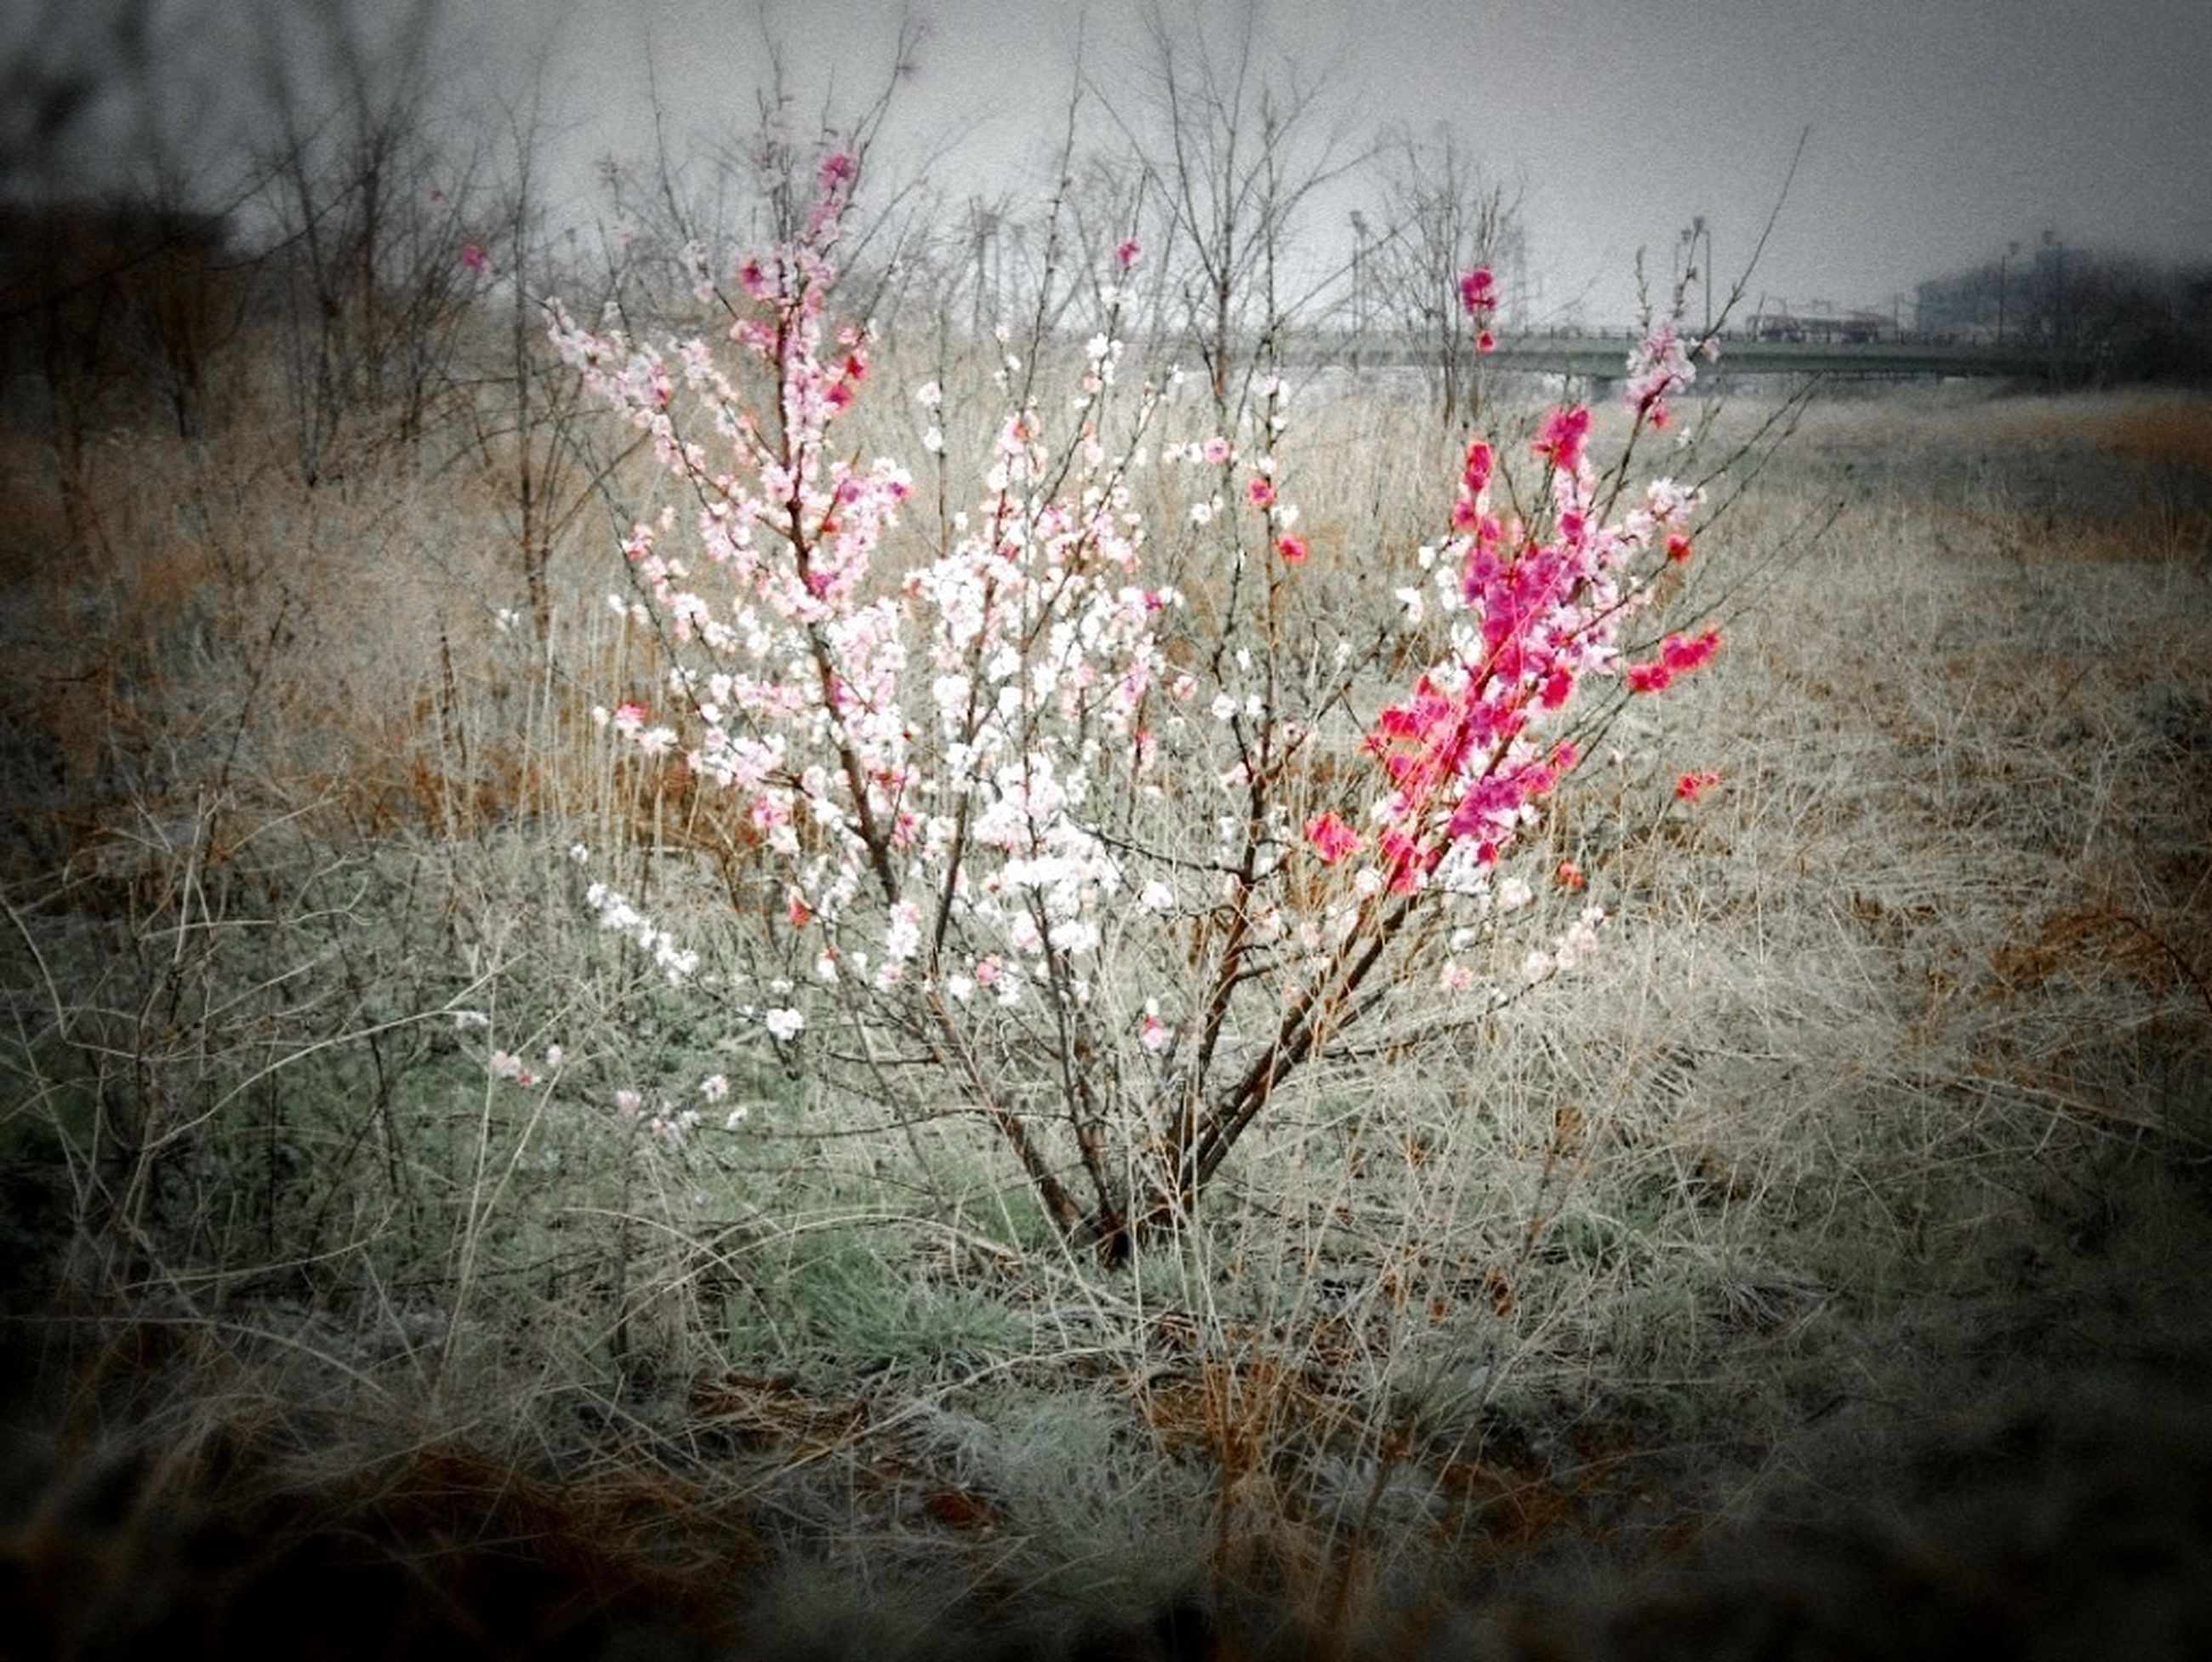 flower, growth, field, beauty in nature, freshness, fragility, nature, plant, red, tranquility, pink color, blooming, petal, focus on foreground, sky, landscape, selective focus, close-up, day, in bloom